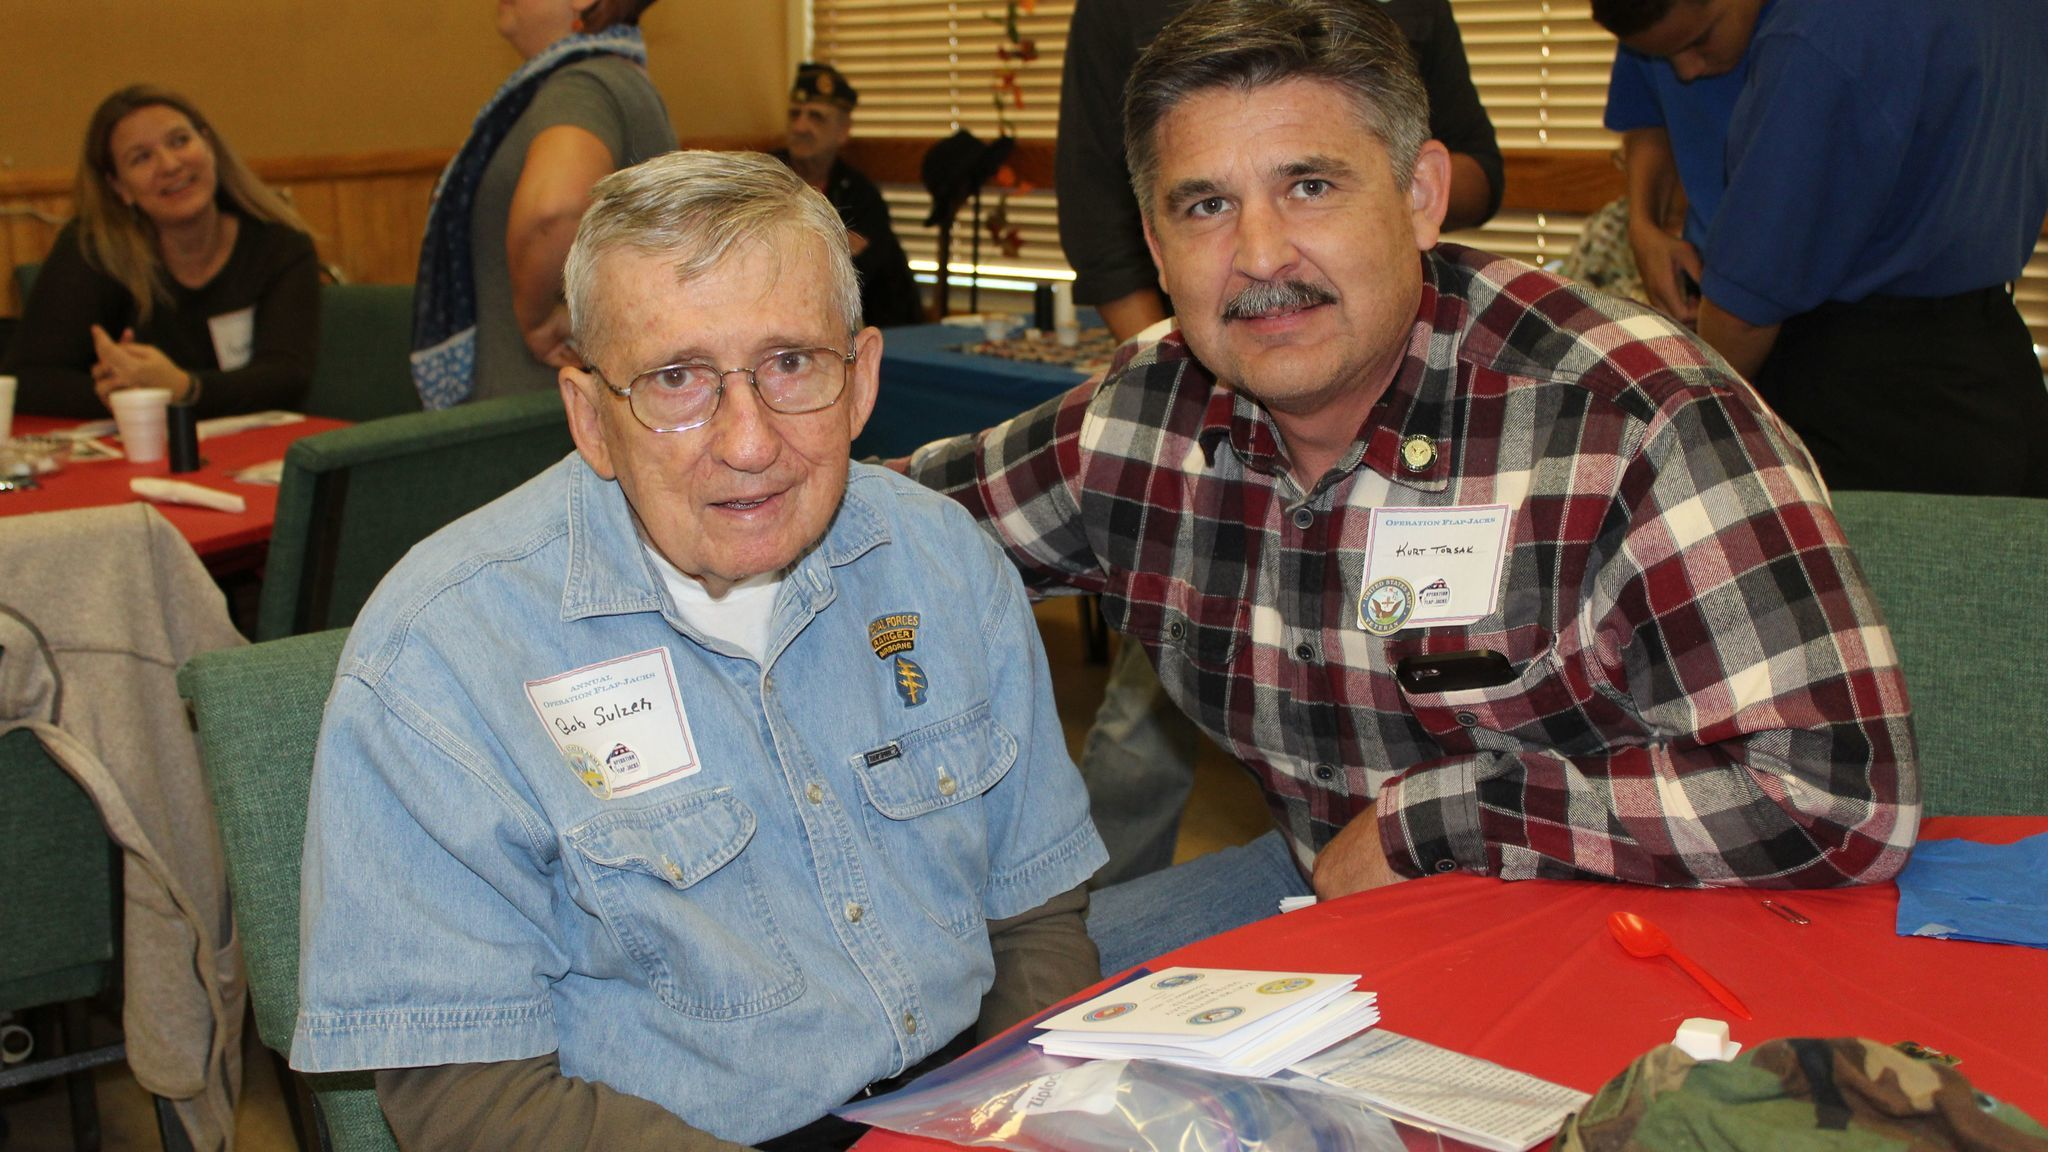 U.S. Army veteran Bob Sulzen, who will present a tribute to the military in the Church of Jesus Christ of Latter Day Saints in Ramona on Nov. 12, and San Diego County Sheriff's Sgt. Kurt Torsak, a U.S. Navy veteran, are among guests at the breakfast.